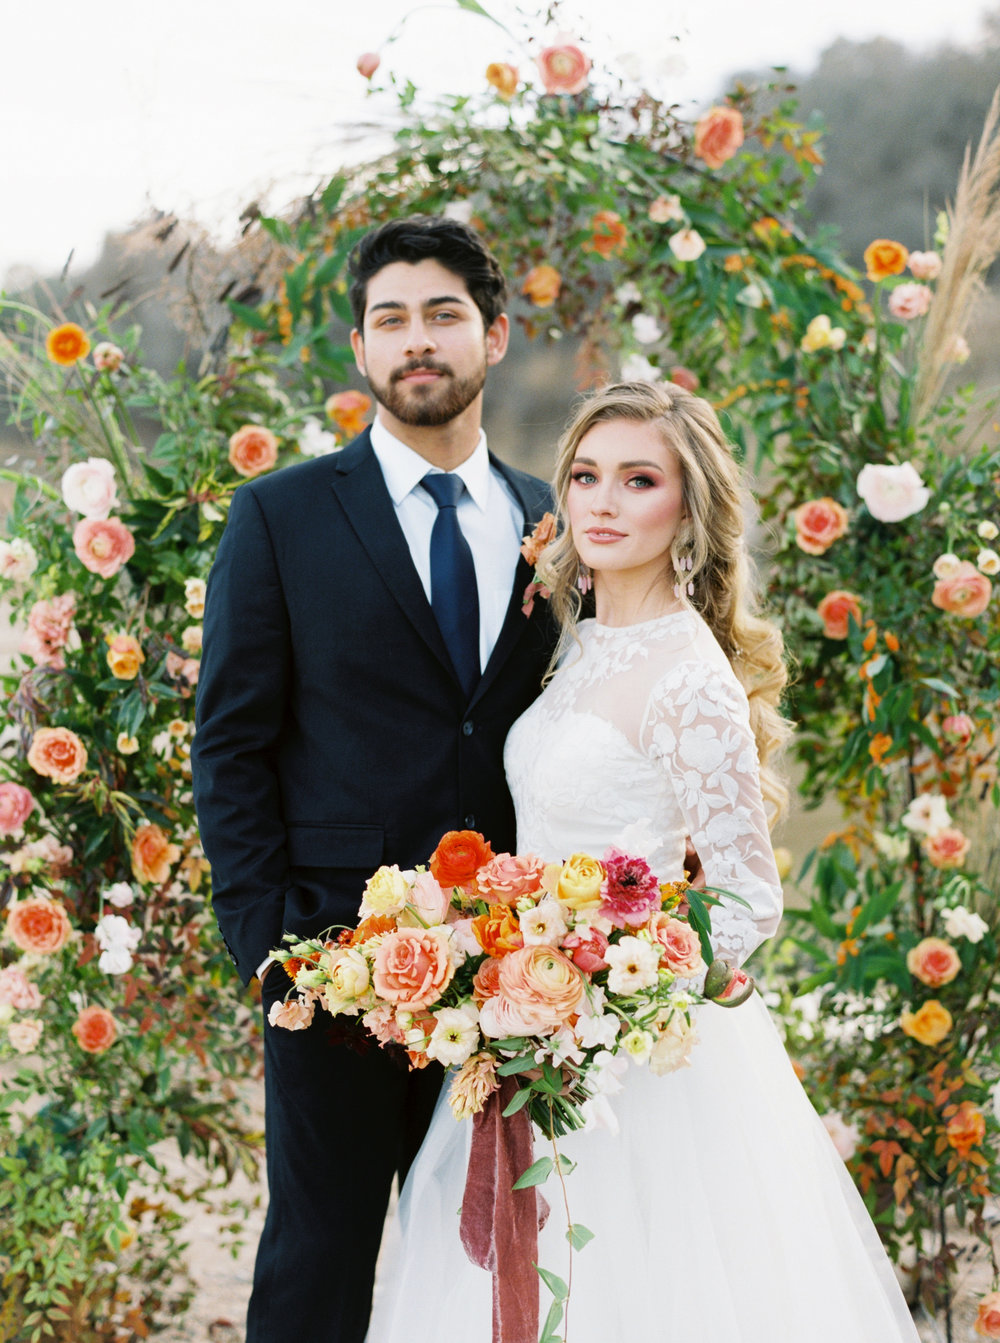 Austin Bride with Bouquet and Groom at Floral Arch